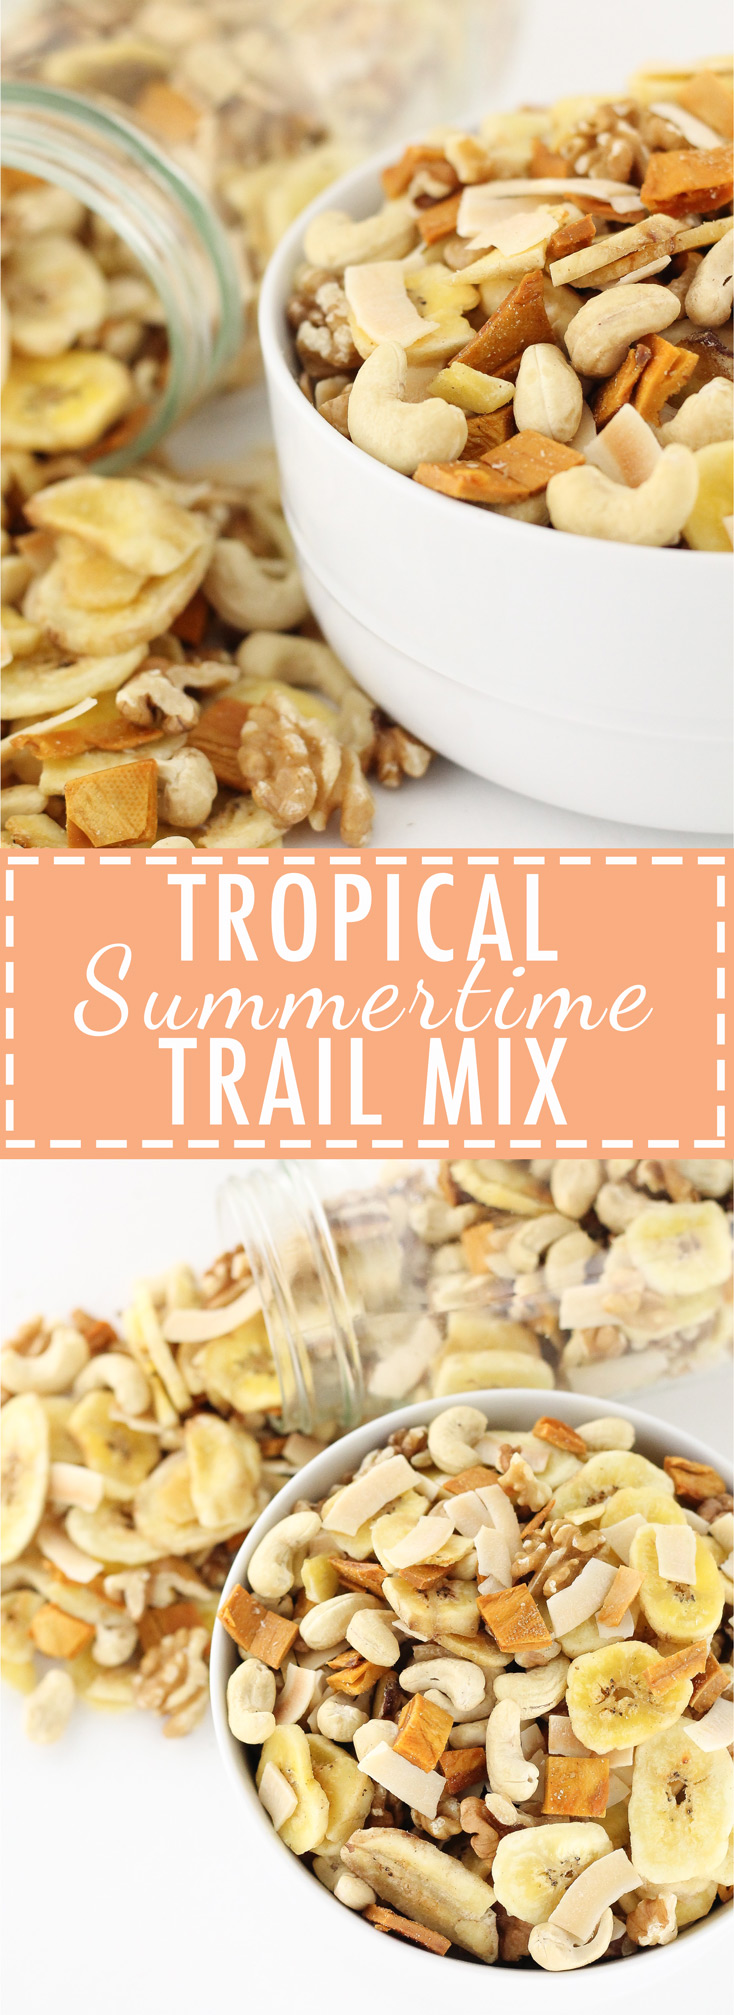 trail mix, paleo, grain free, gluten free, dairy free, easy, quick, homemade, recipe, summertime, tropical, mango, coconut